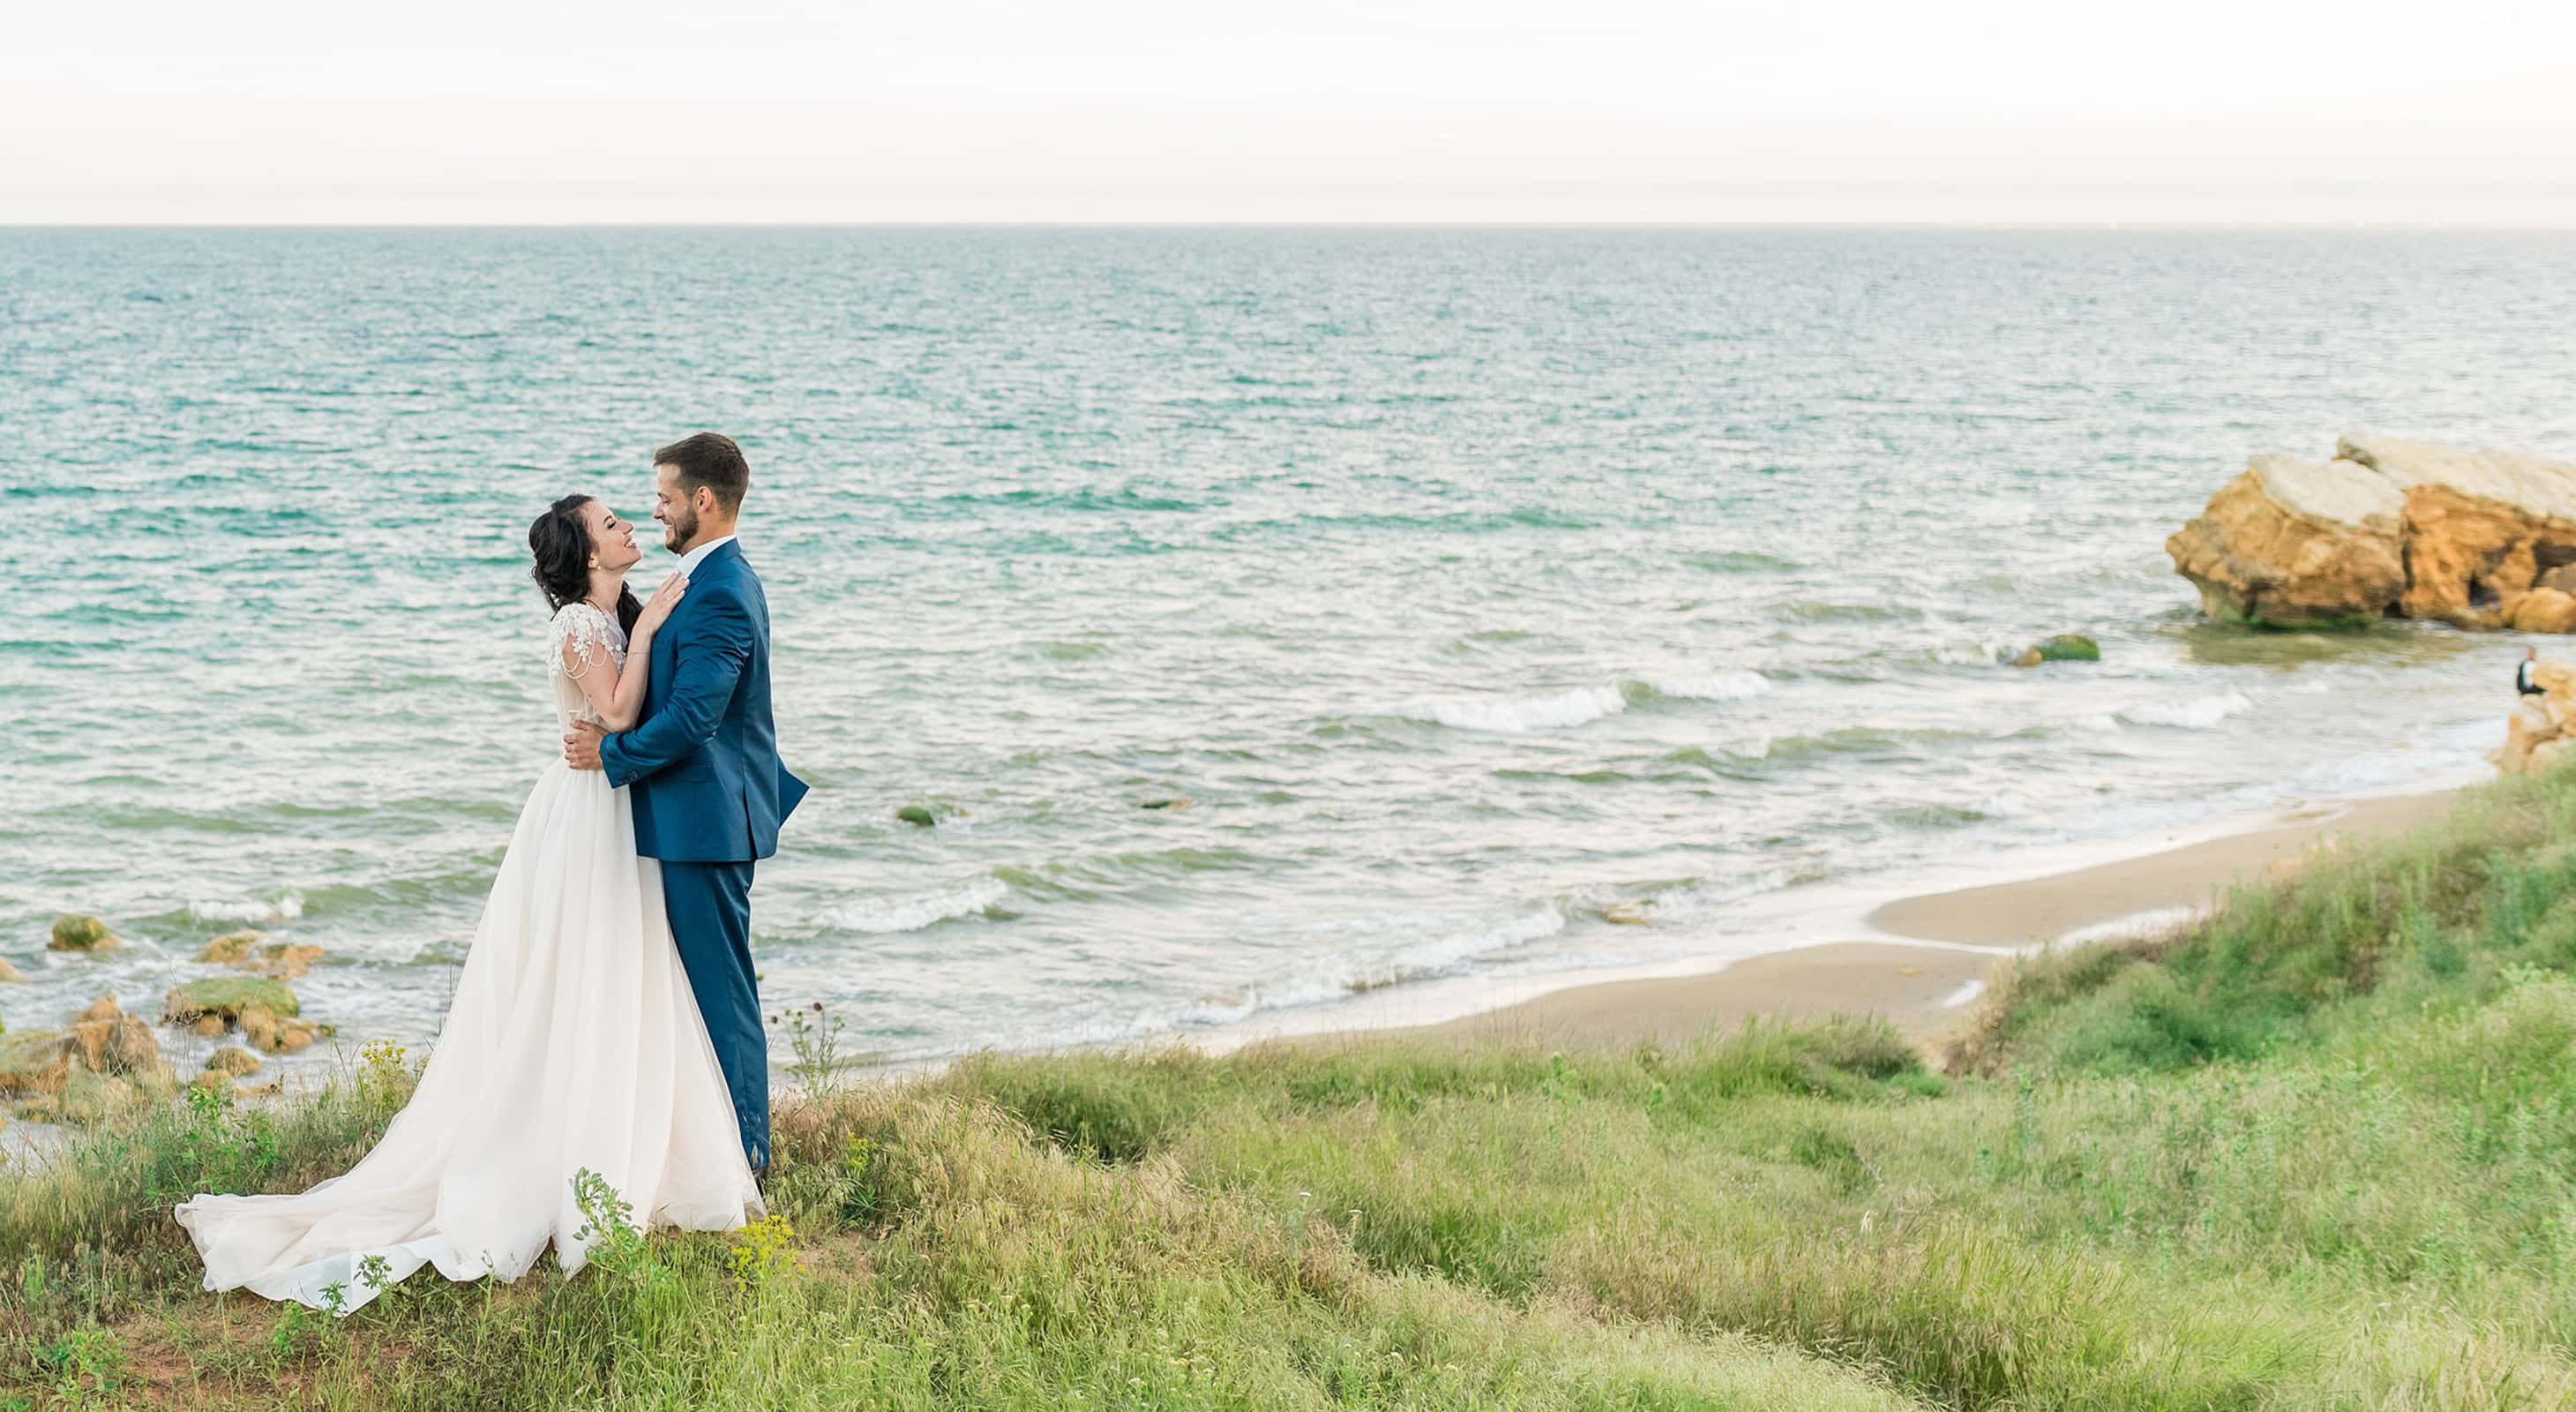 Bride and groom standing at the ocean edge during their Maine elopement